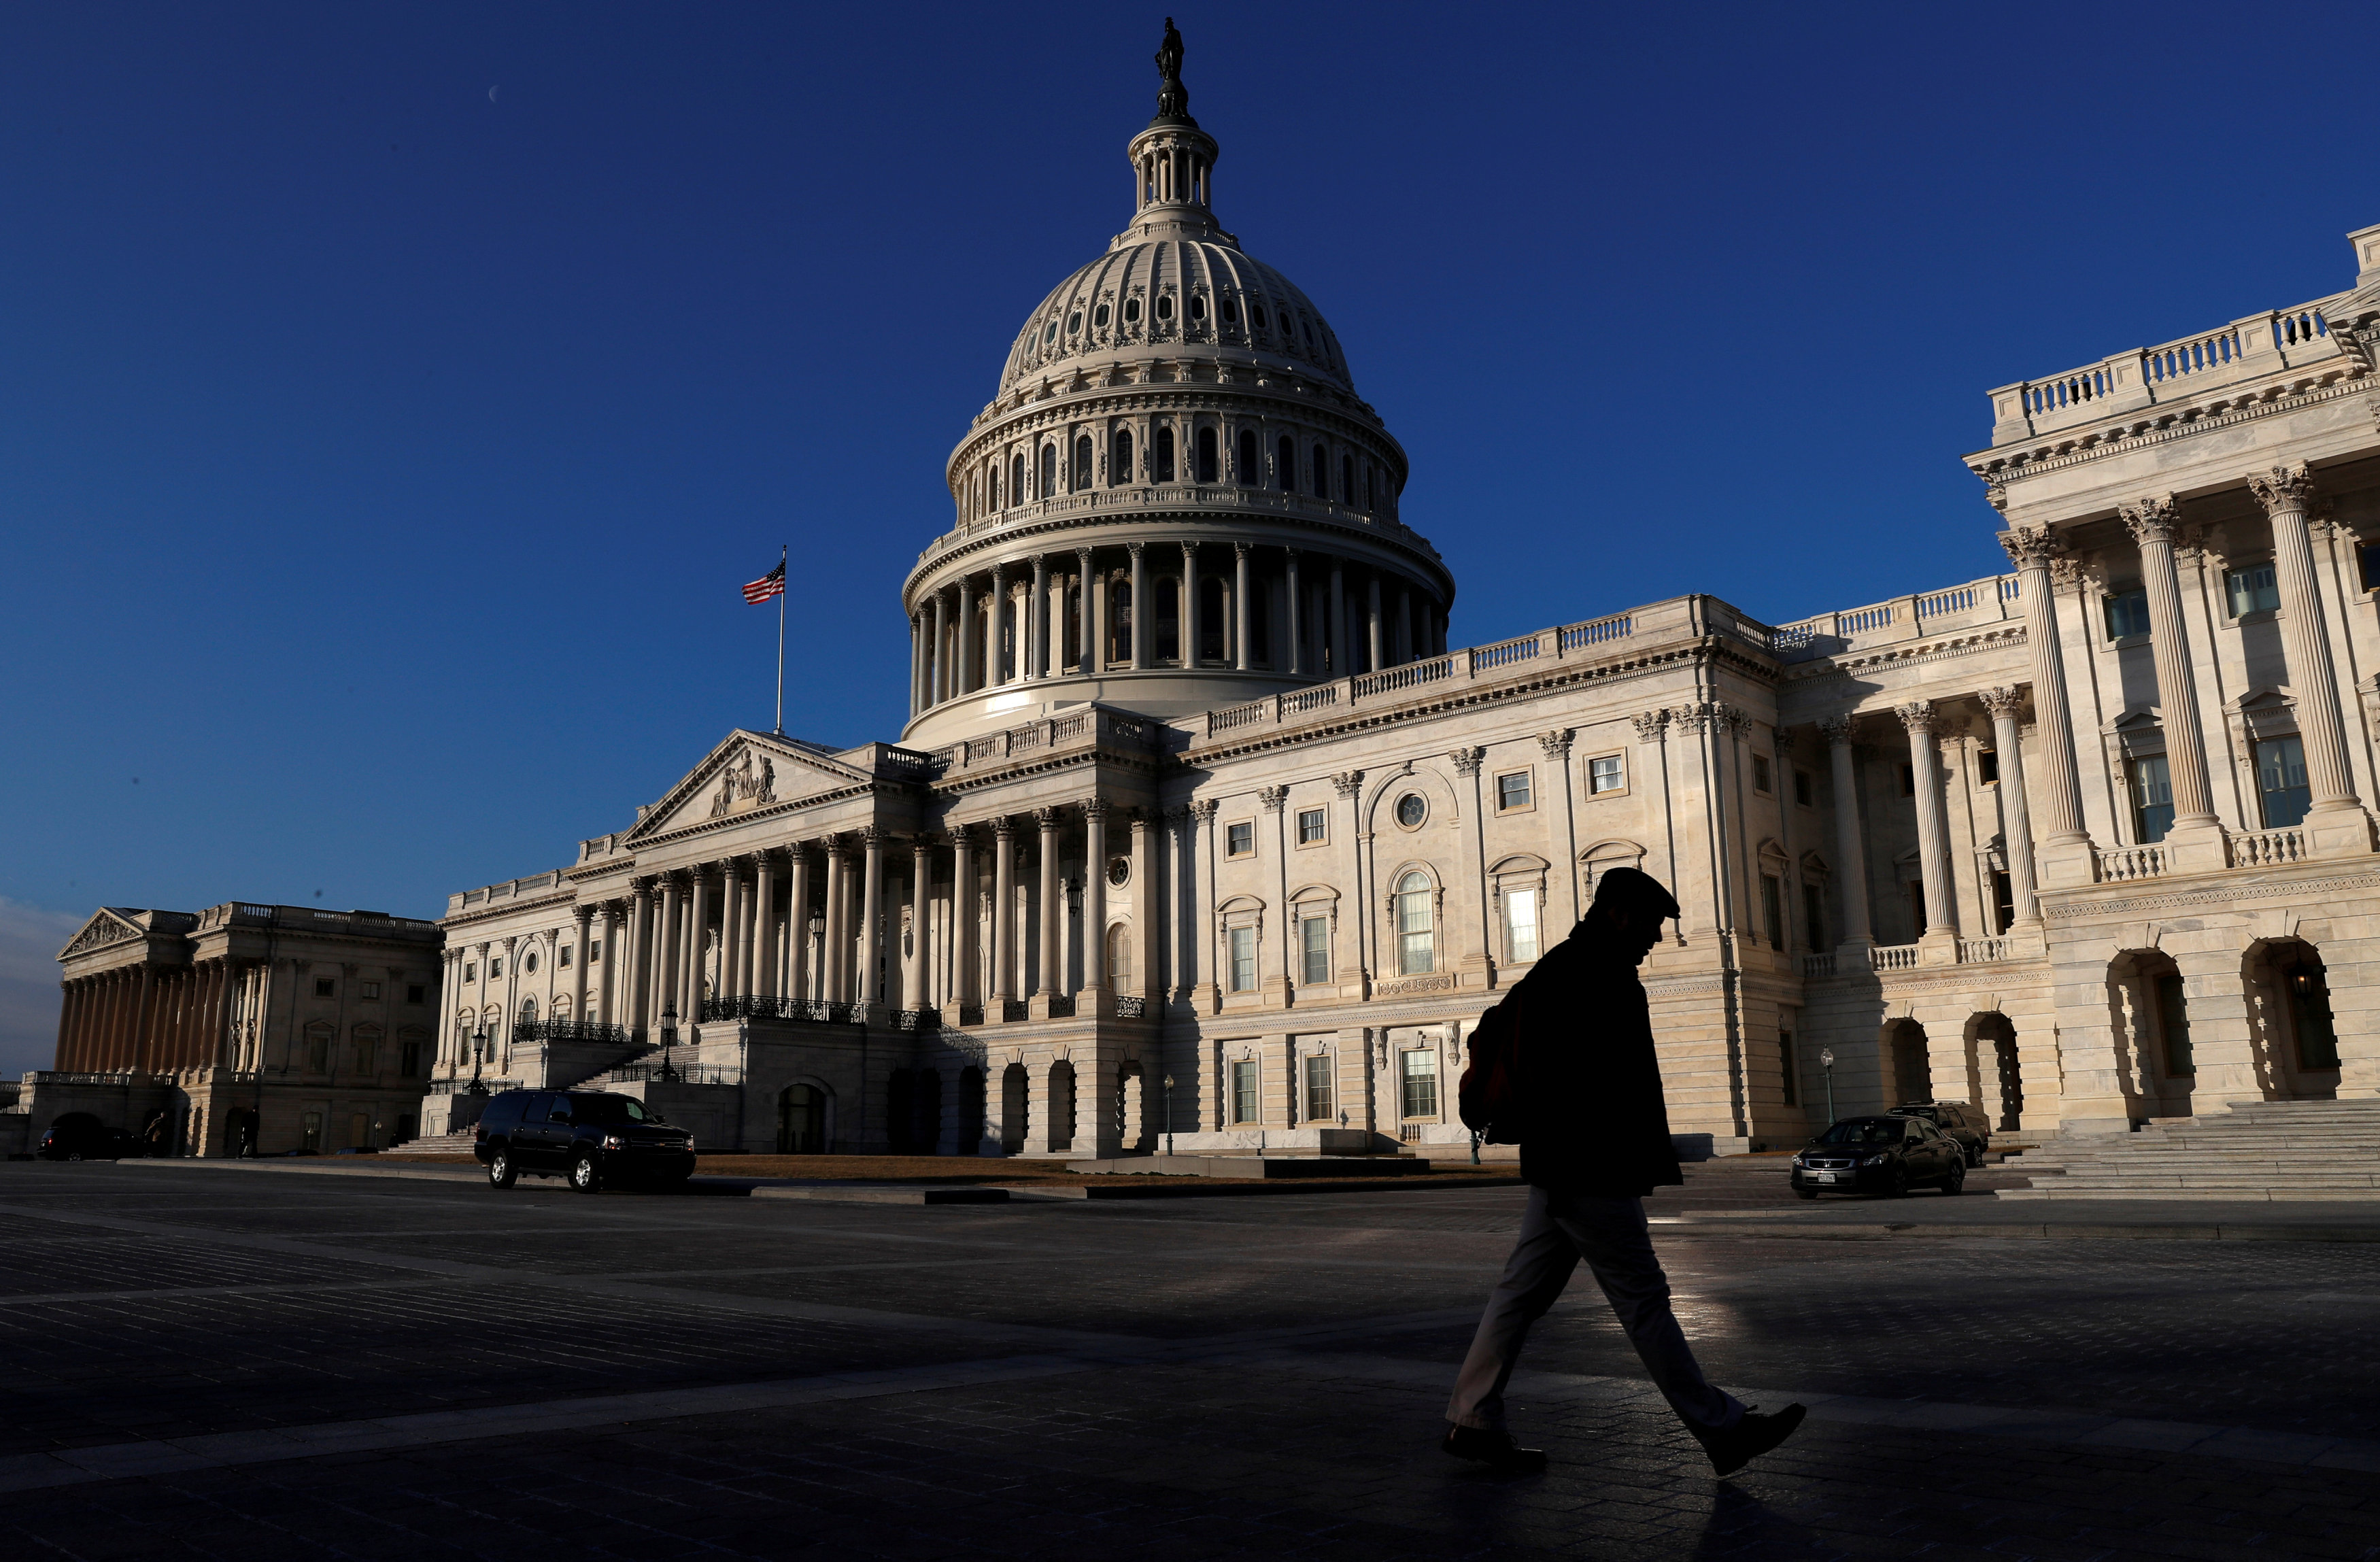 People walk by the U.S. Capitol building in Washington, U.S., February 8, 2018. REUTERS/Leah Millis/File Photo